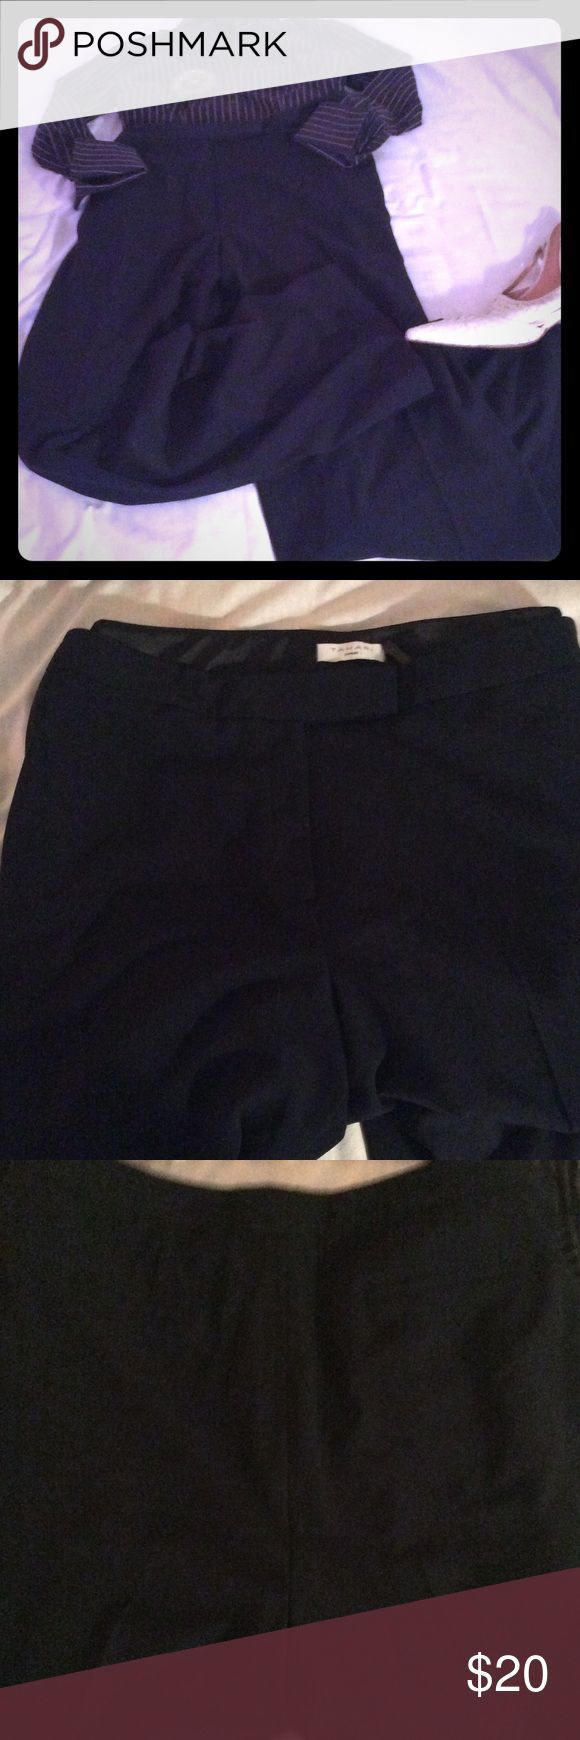 Tahari Woman Navy Trousers NWT Tahari Woman Navy Blue Trousers, 63% Polyester, 32% Viscose, 5%Rayon, 36 inch Inseam, Nice Pants for Plus Size Woman. The Inseam is 36 Inches, maybe for a Tall Plus Woman. The Plus is these Pants are very nice! Tahari Woman Pants Trousers